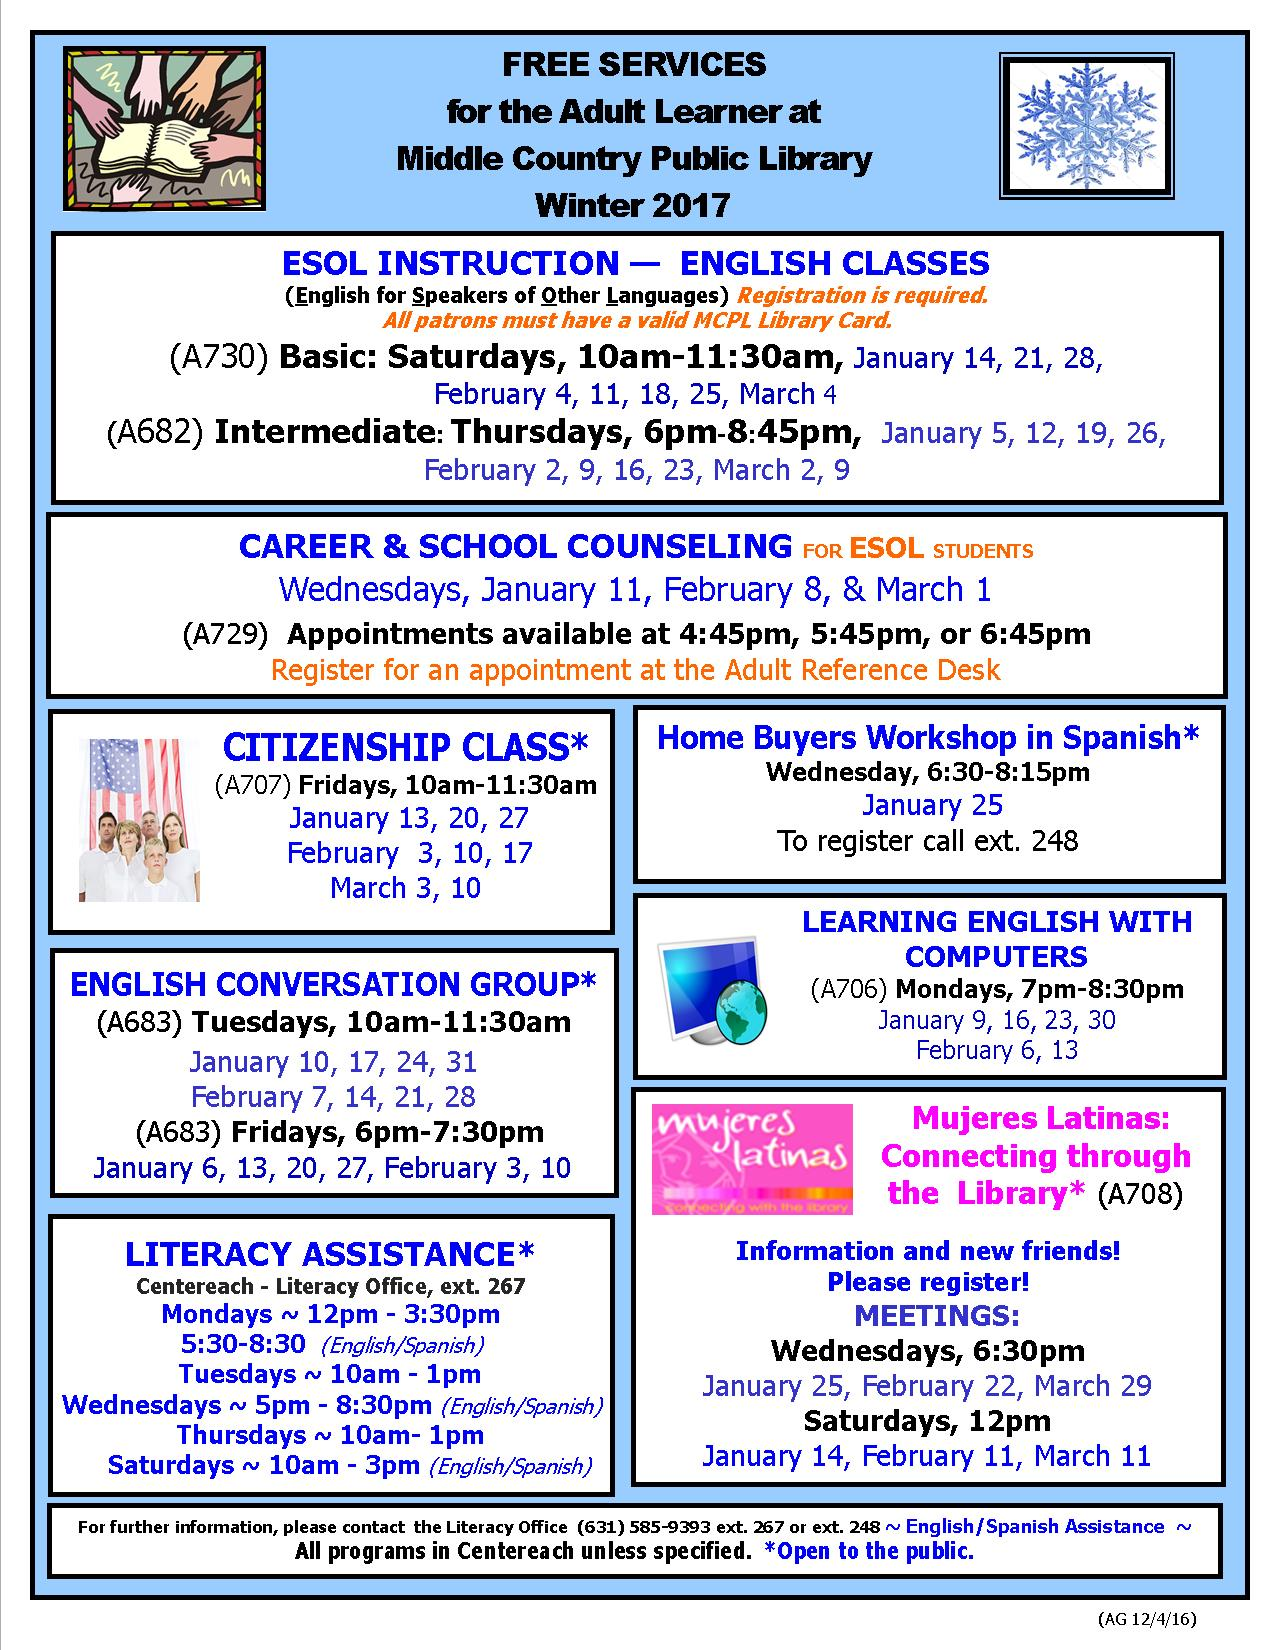 winter 2017 service flyer 1 middle country public library winter 2017 service flyer 1